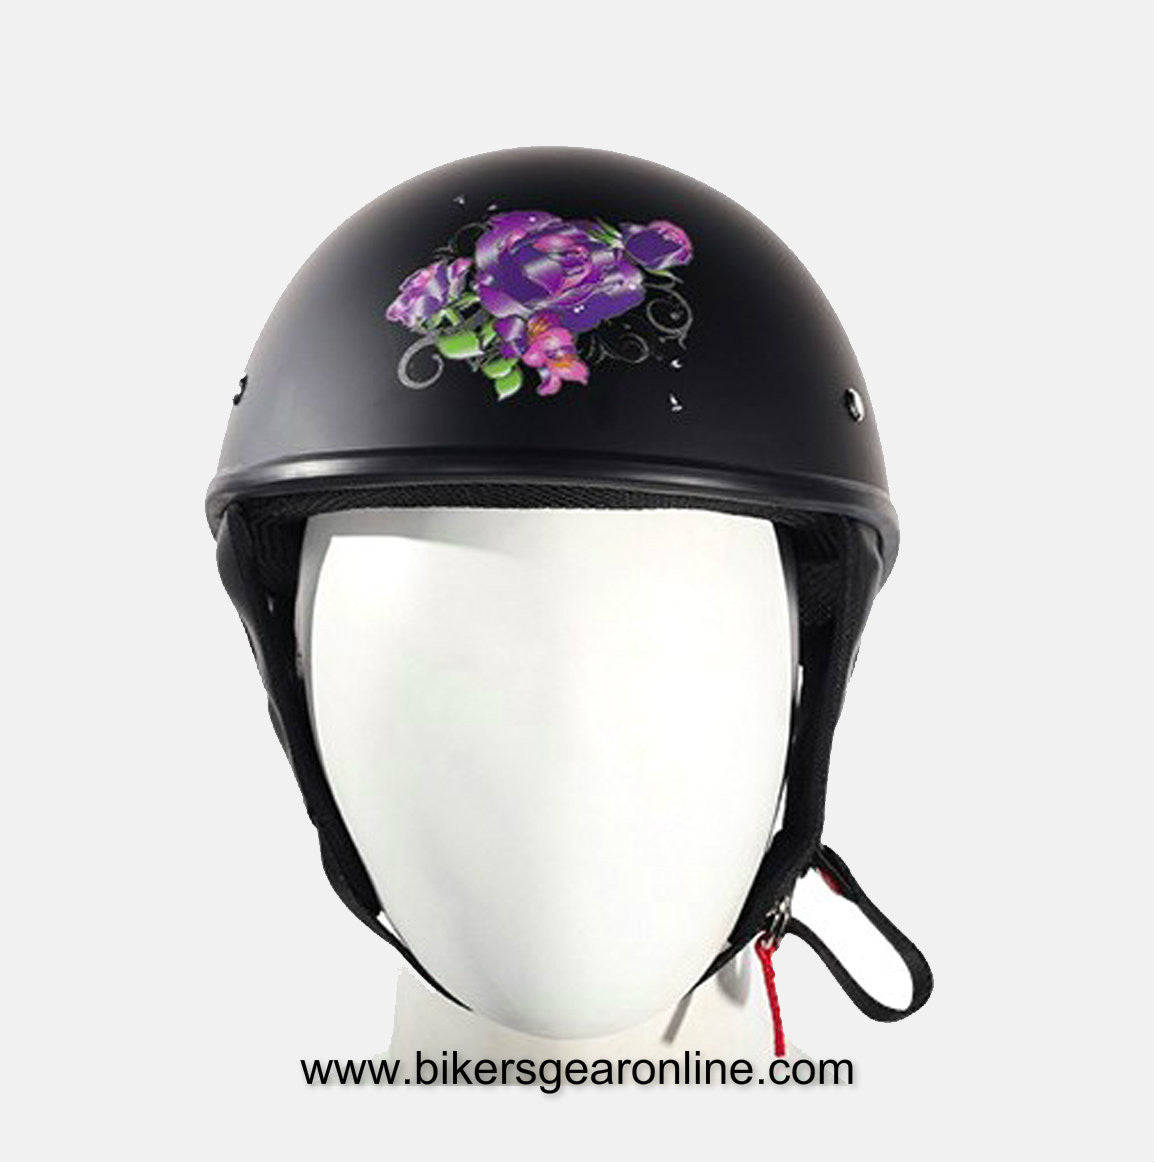 WOMEN'S DOT APPROVED HELMET FLAT W/ PURPLE ROSE TRIBAL